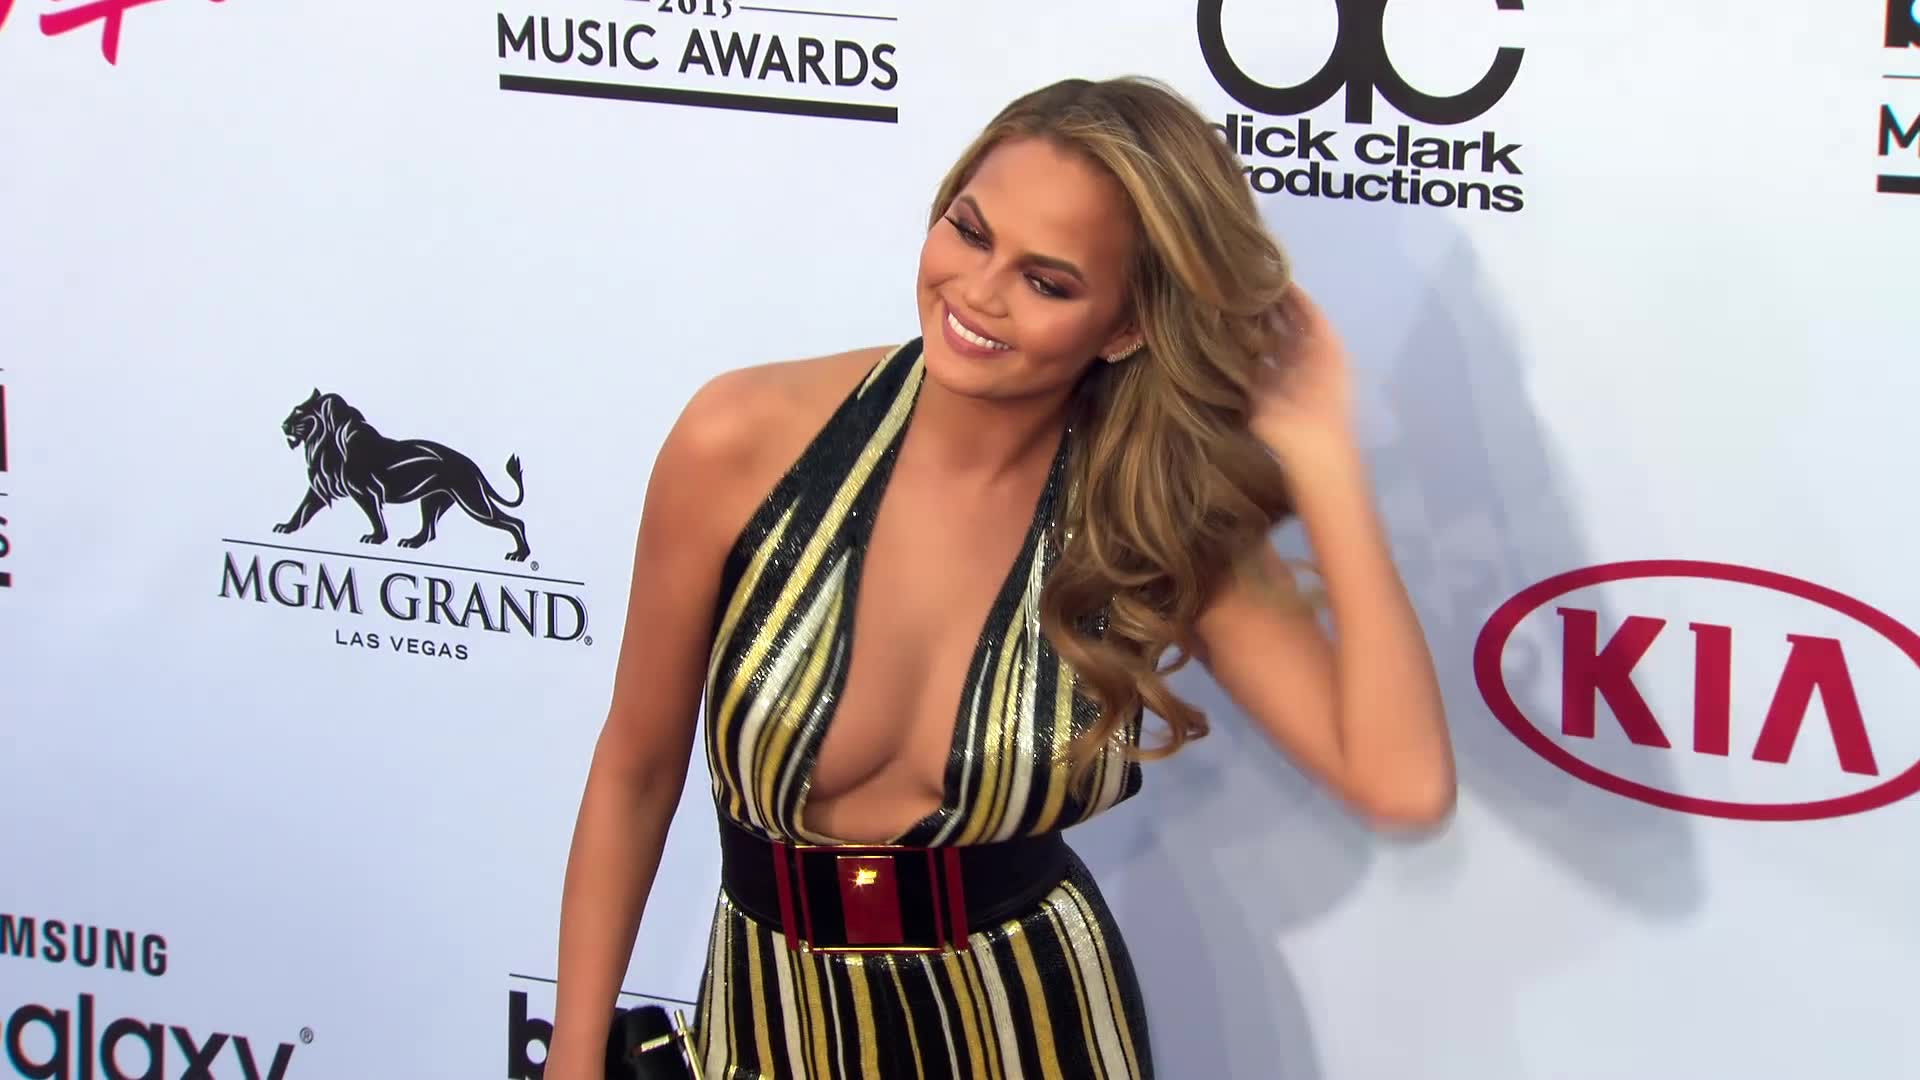 Chrissy Teigen Laughs Off Online Hater Who Claims a 'Baby Ruined Her Body'